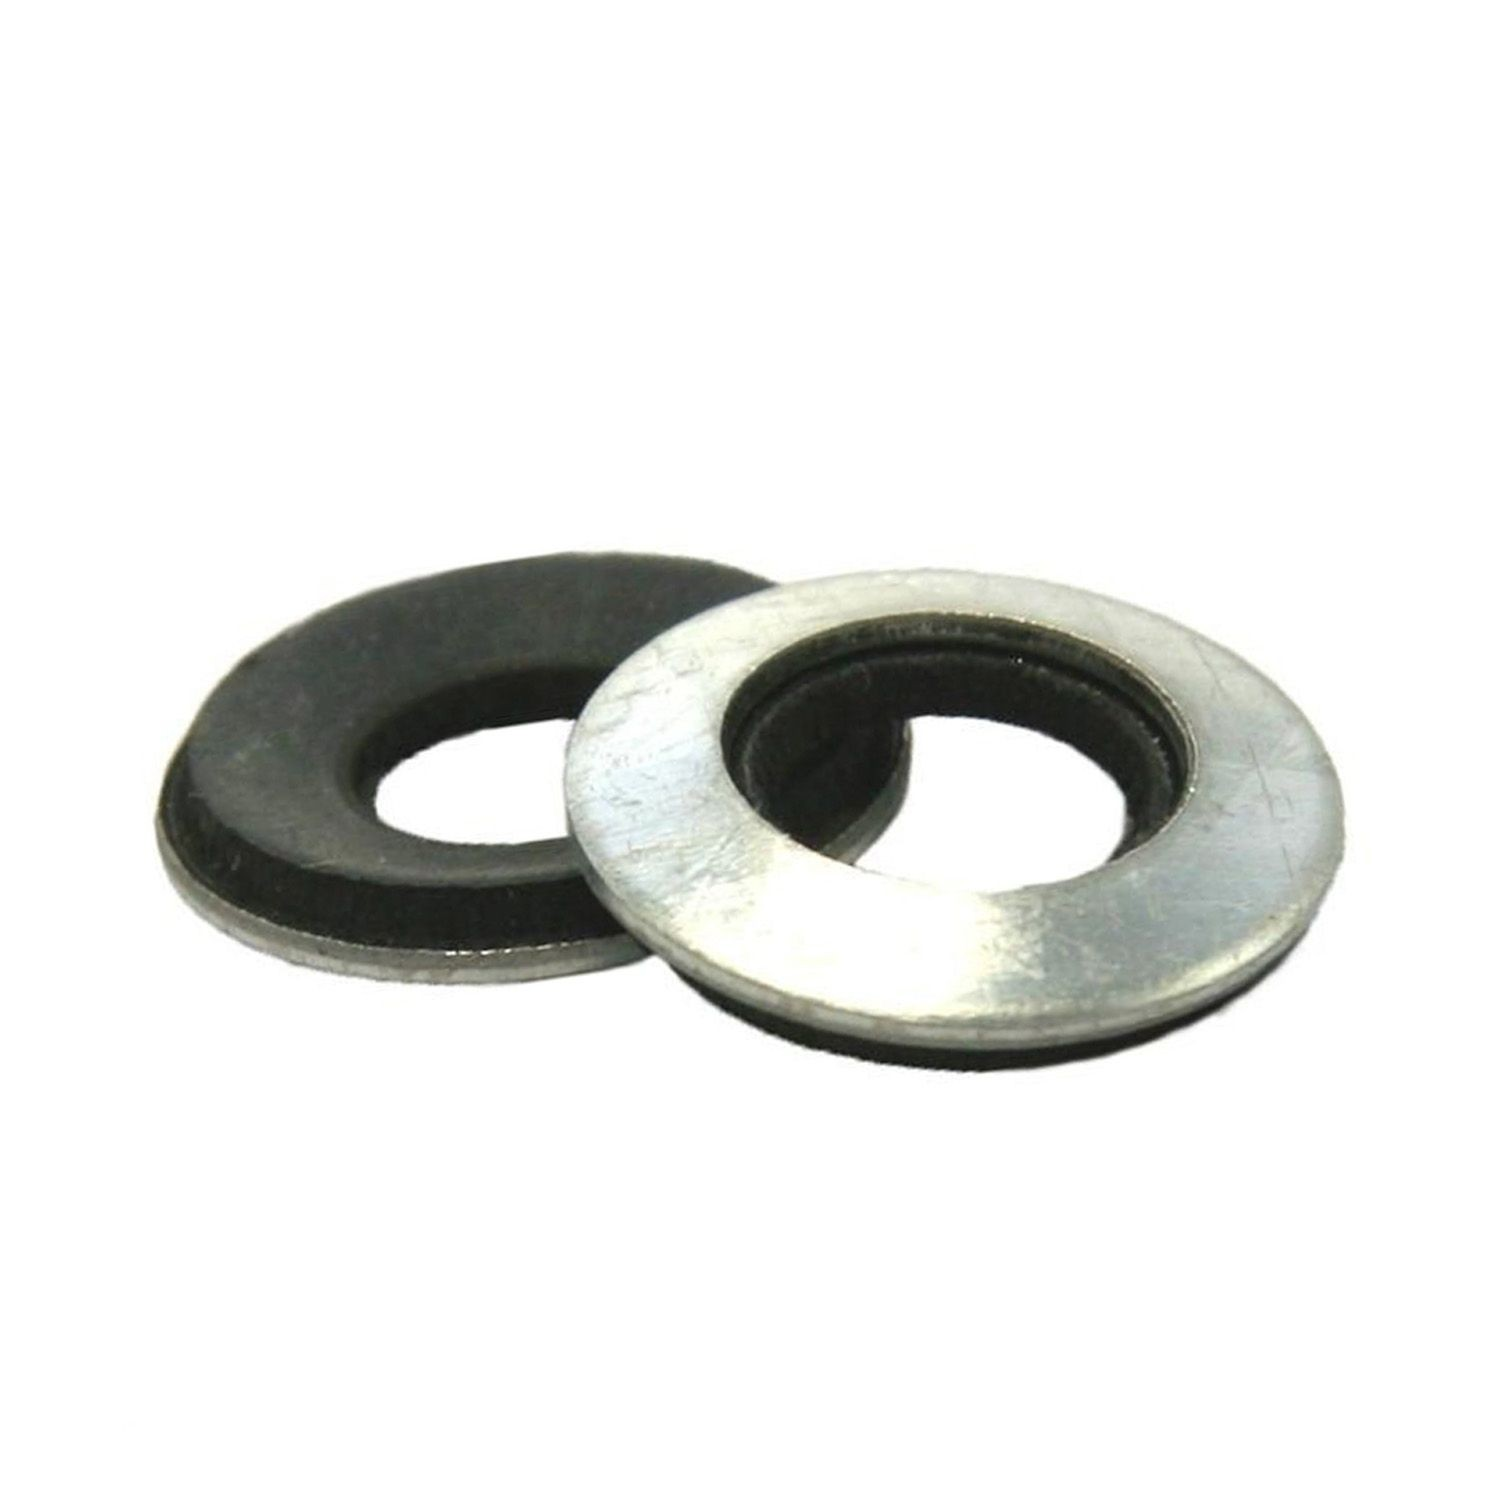 #10 Stainless Steel EPDM Bonded Sealing Washer